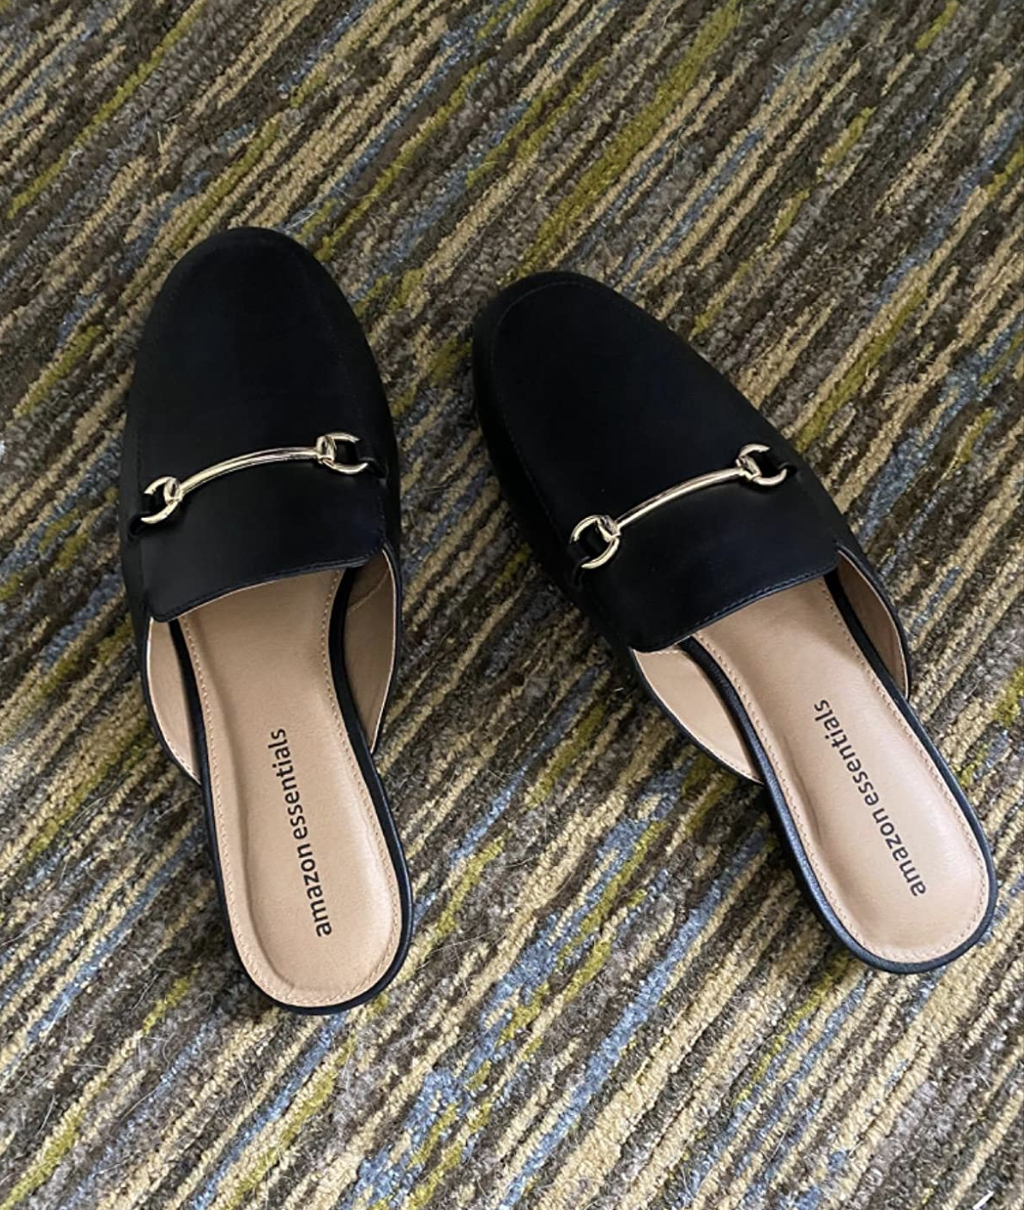 Reviewer image of black mule shoes with a decorative metal buckle on the top of the foot